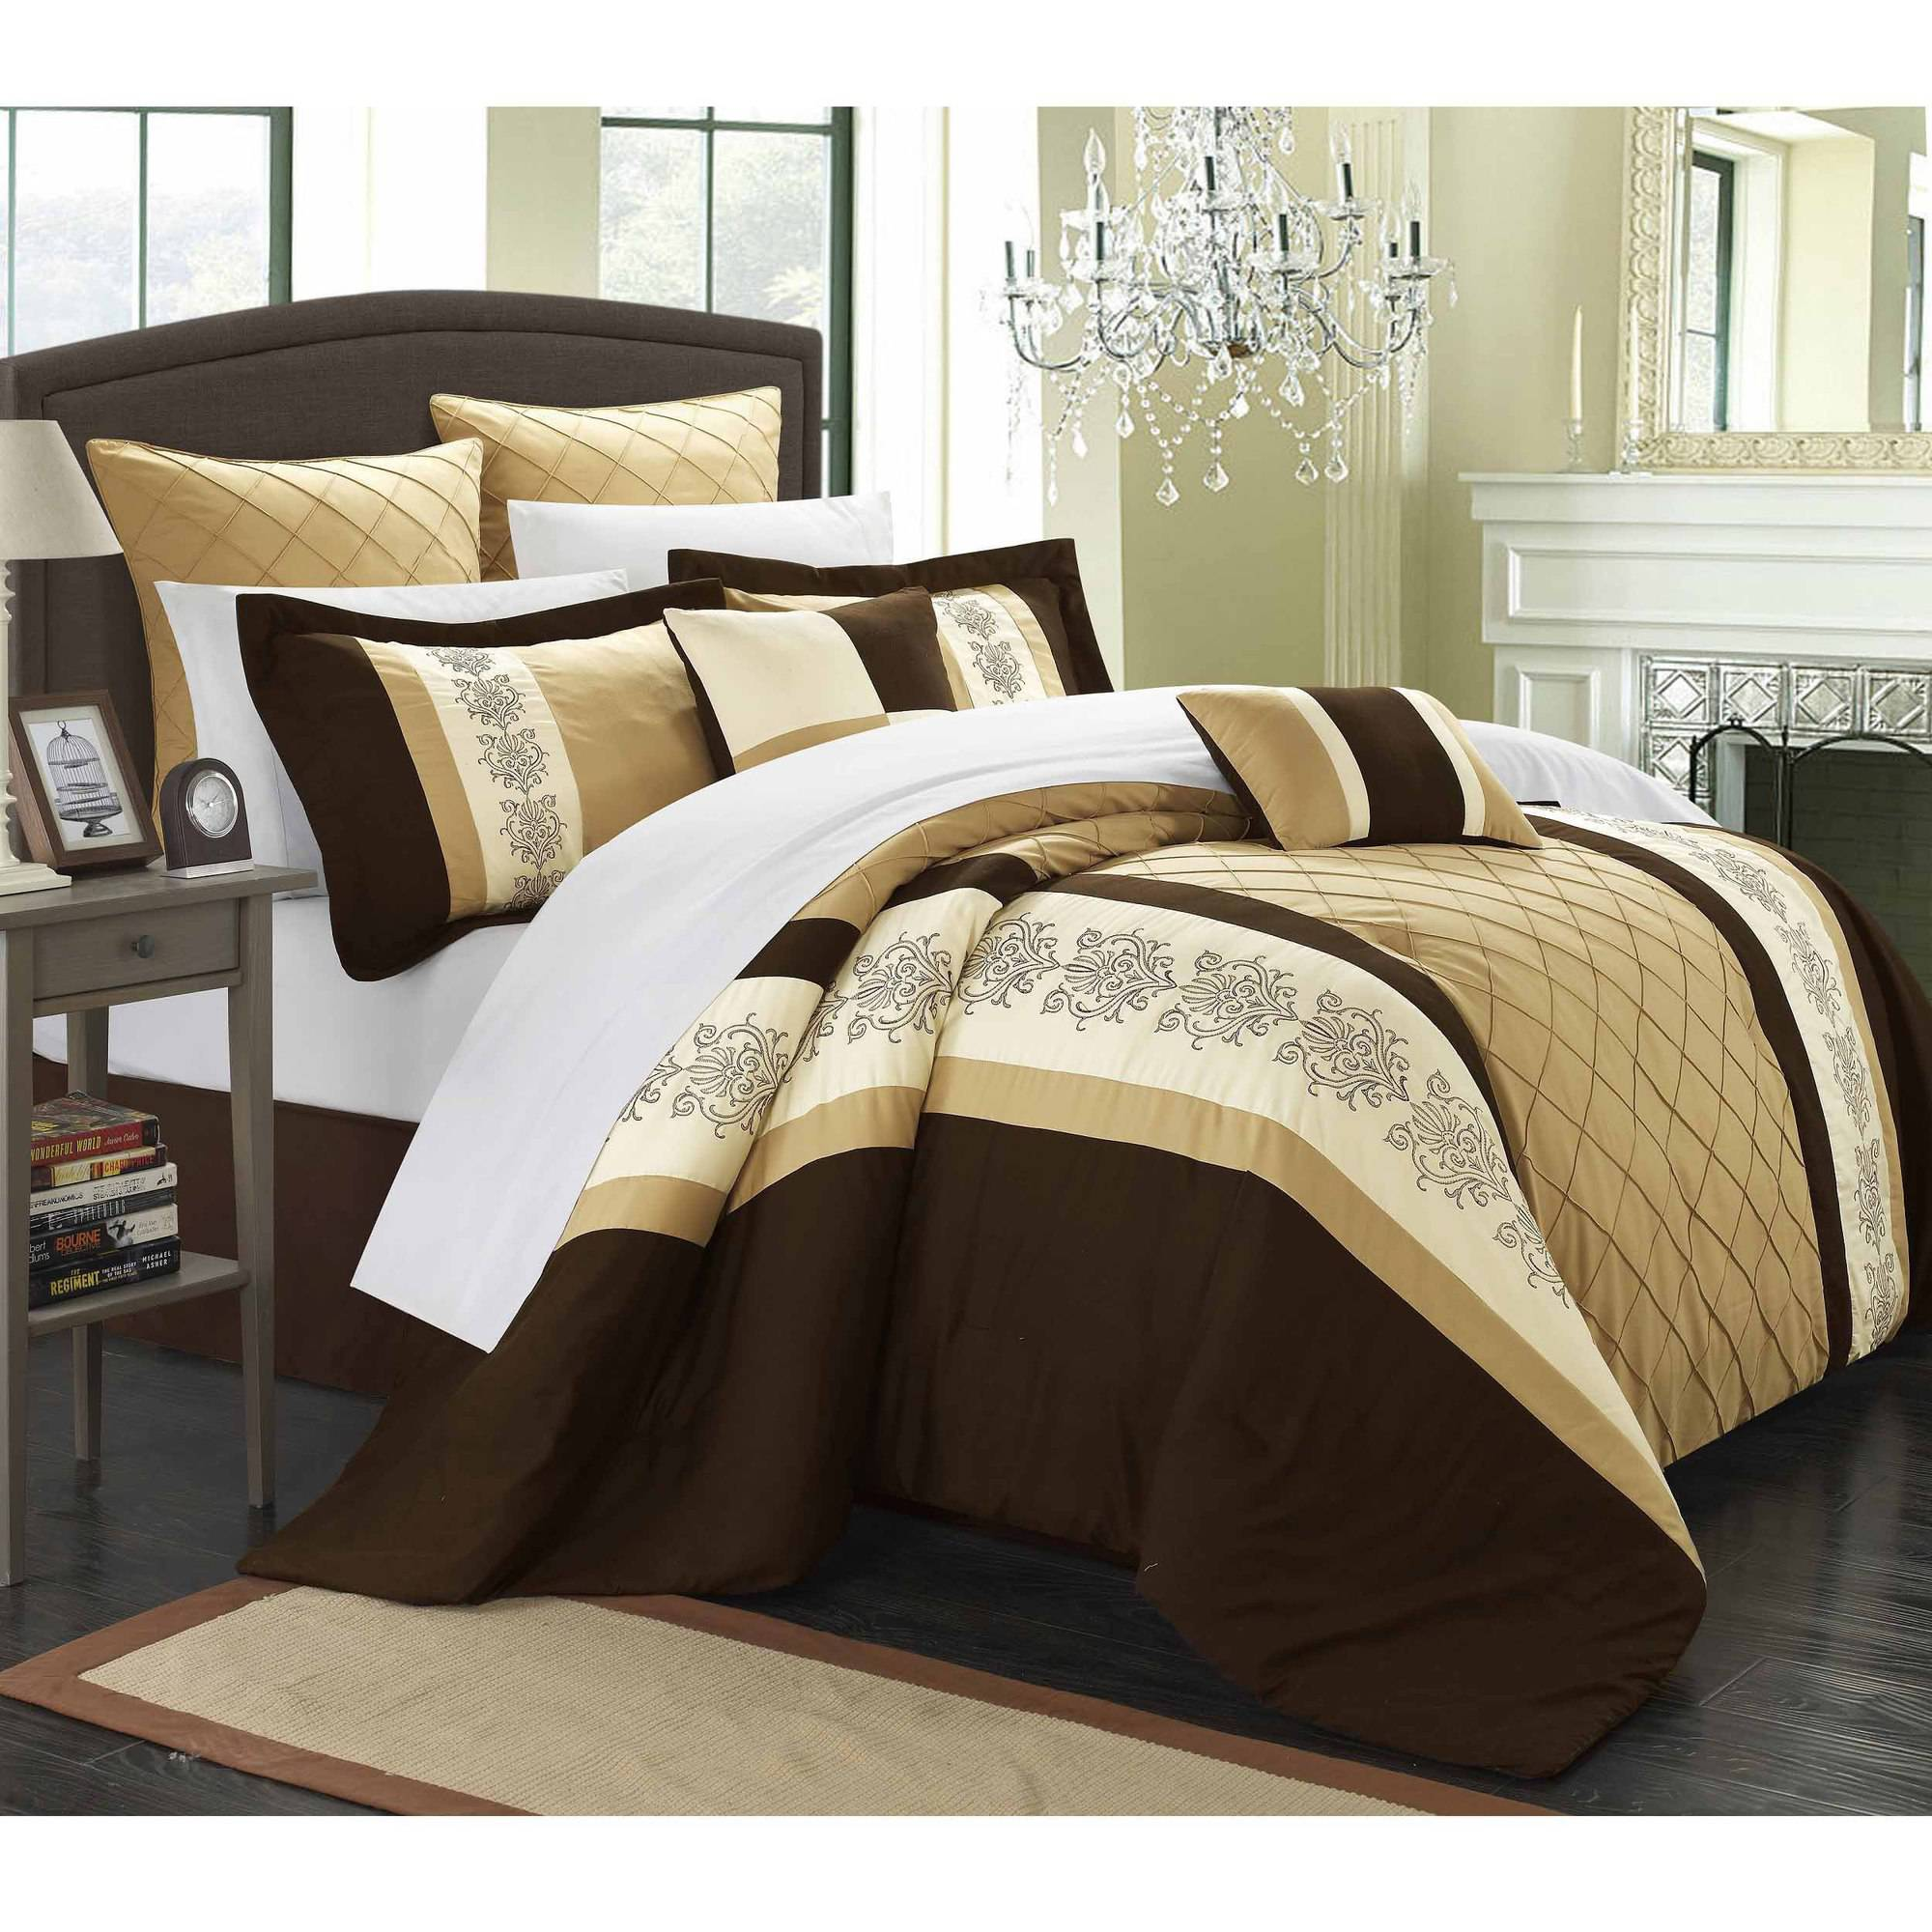 Chic Home Arlington 12-Piece Bed-in-a-Bag Embroidery Comforter Set